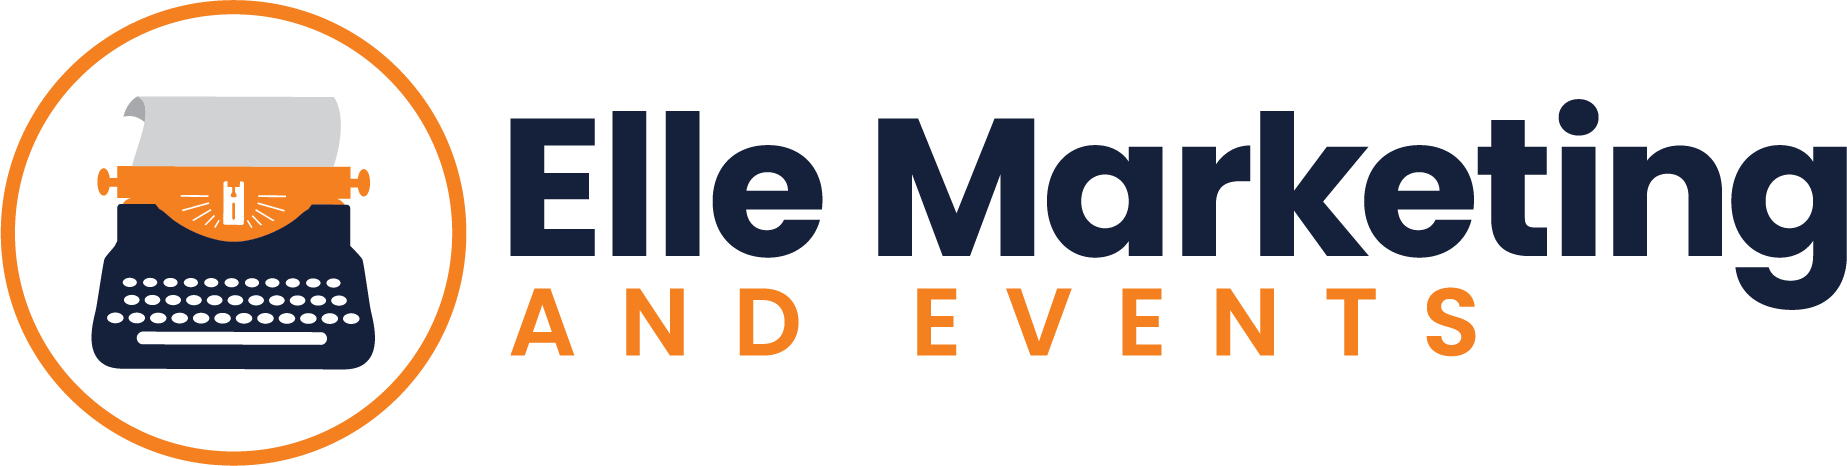 Elle Marketing and Events